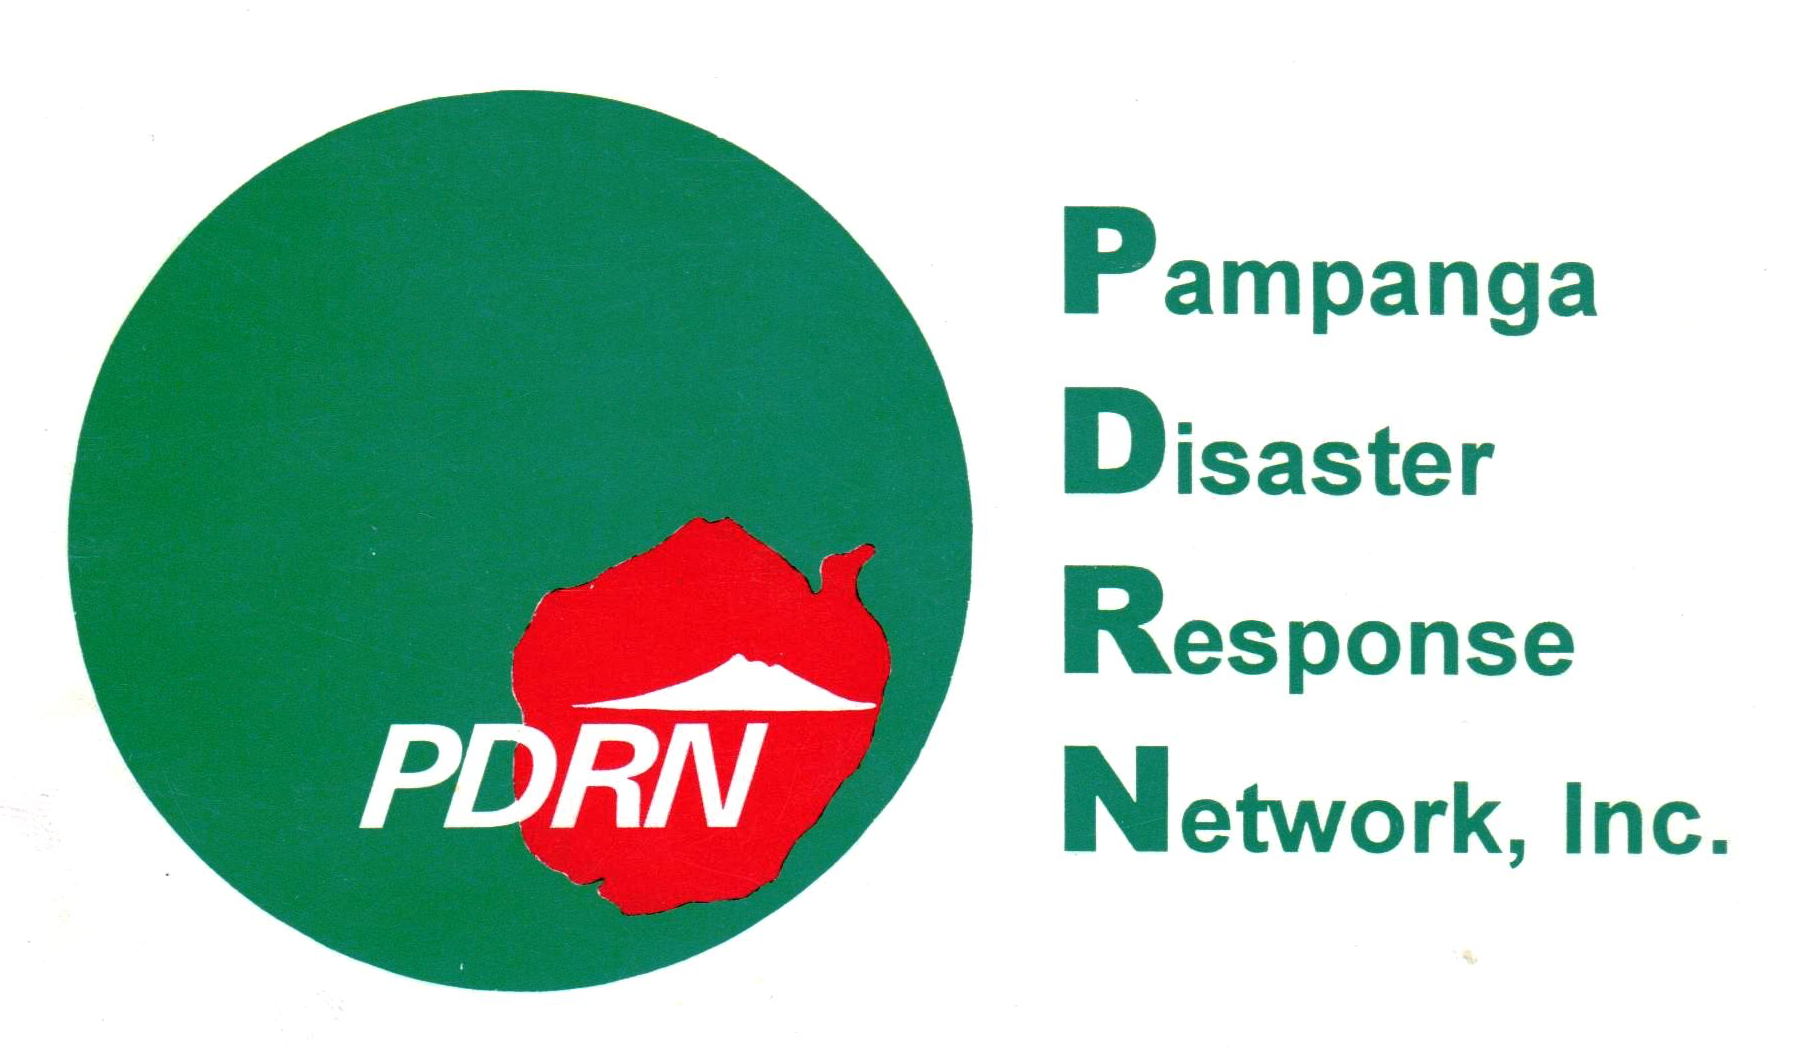 PDRN Old logo